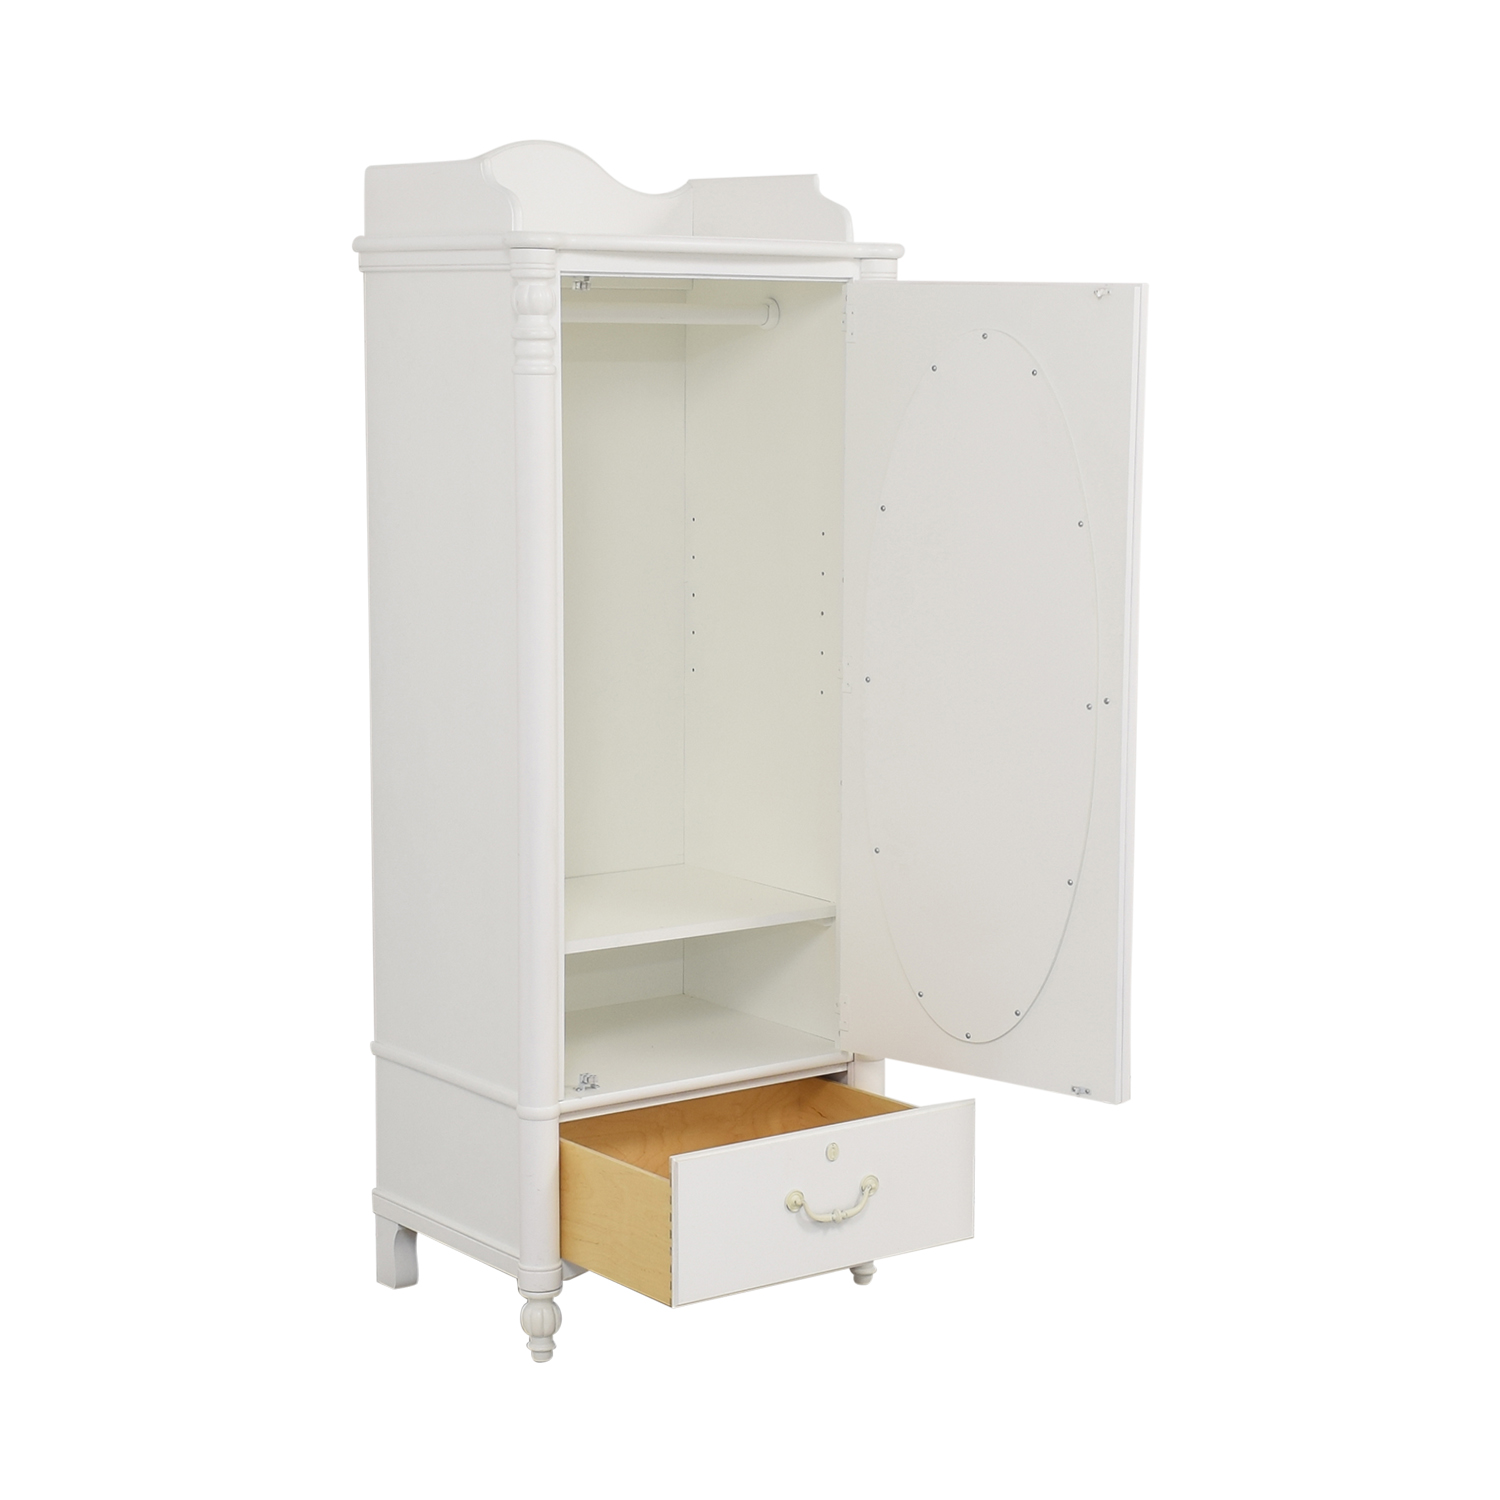 Stanley Furniture Stanley Furniture Cameo Armoire Wardrobes & Armoires